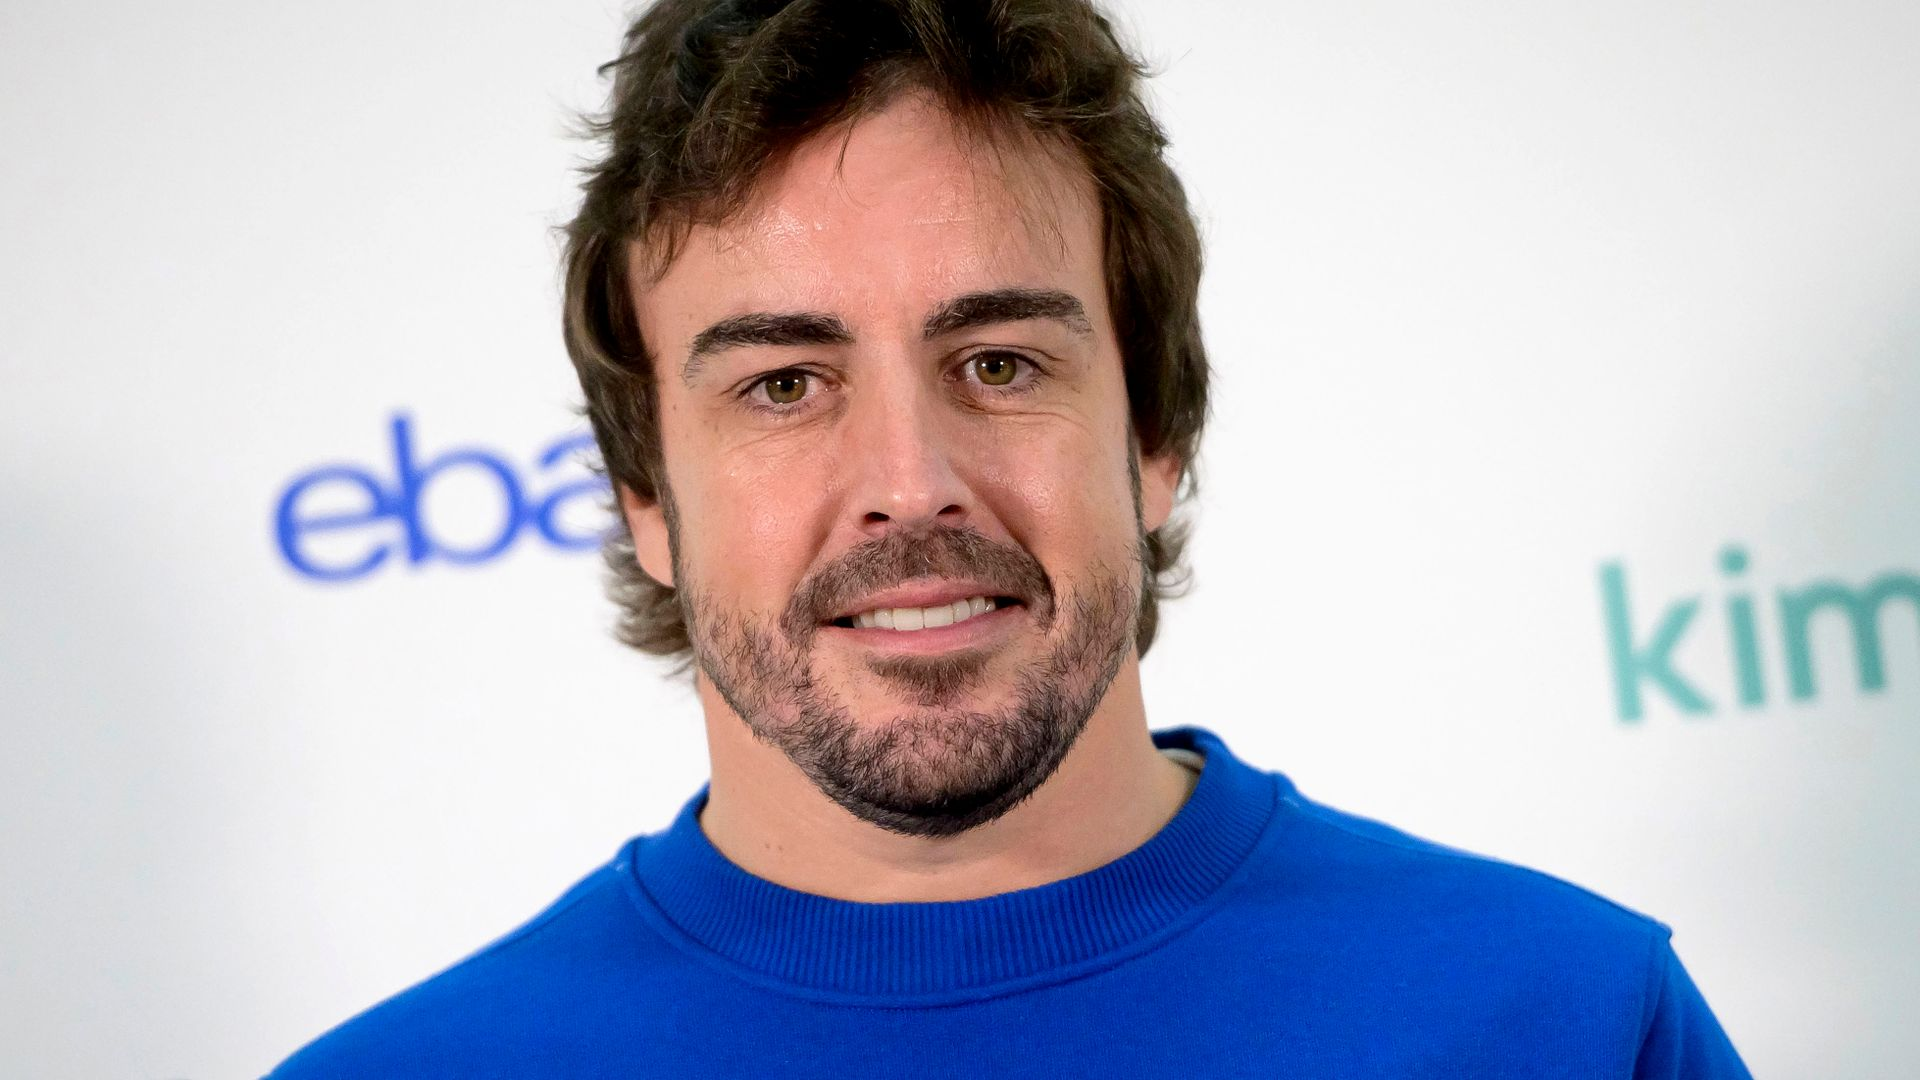 Alonso: Will he return to F1 for 2021?